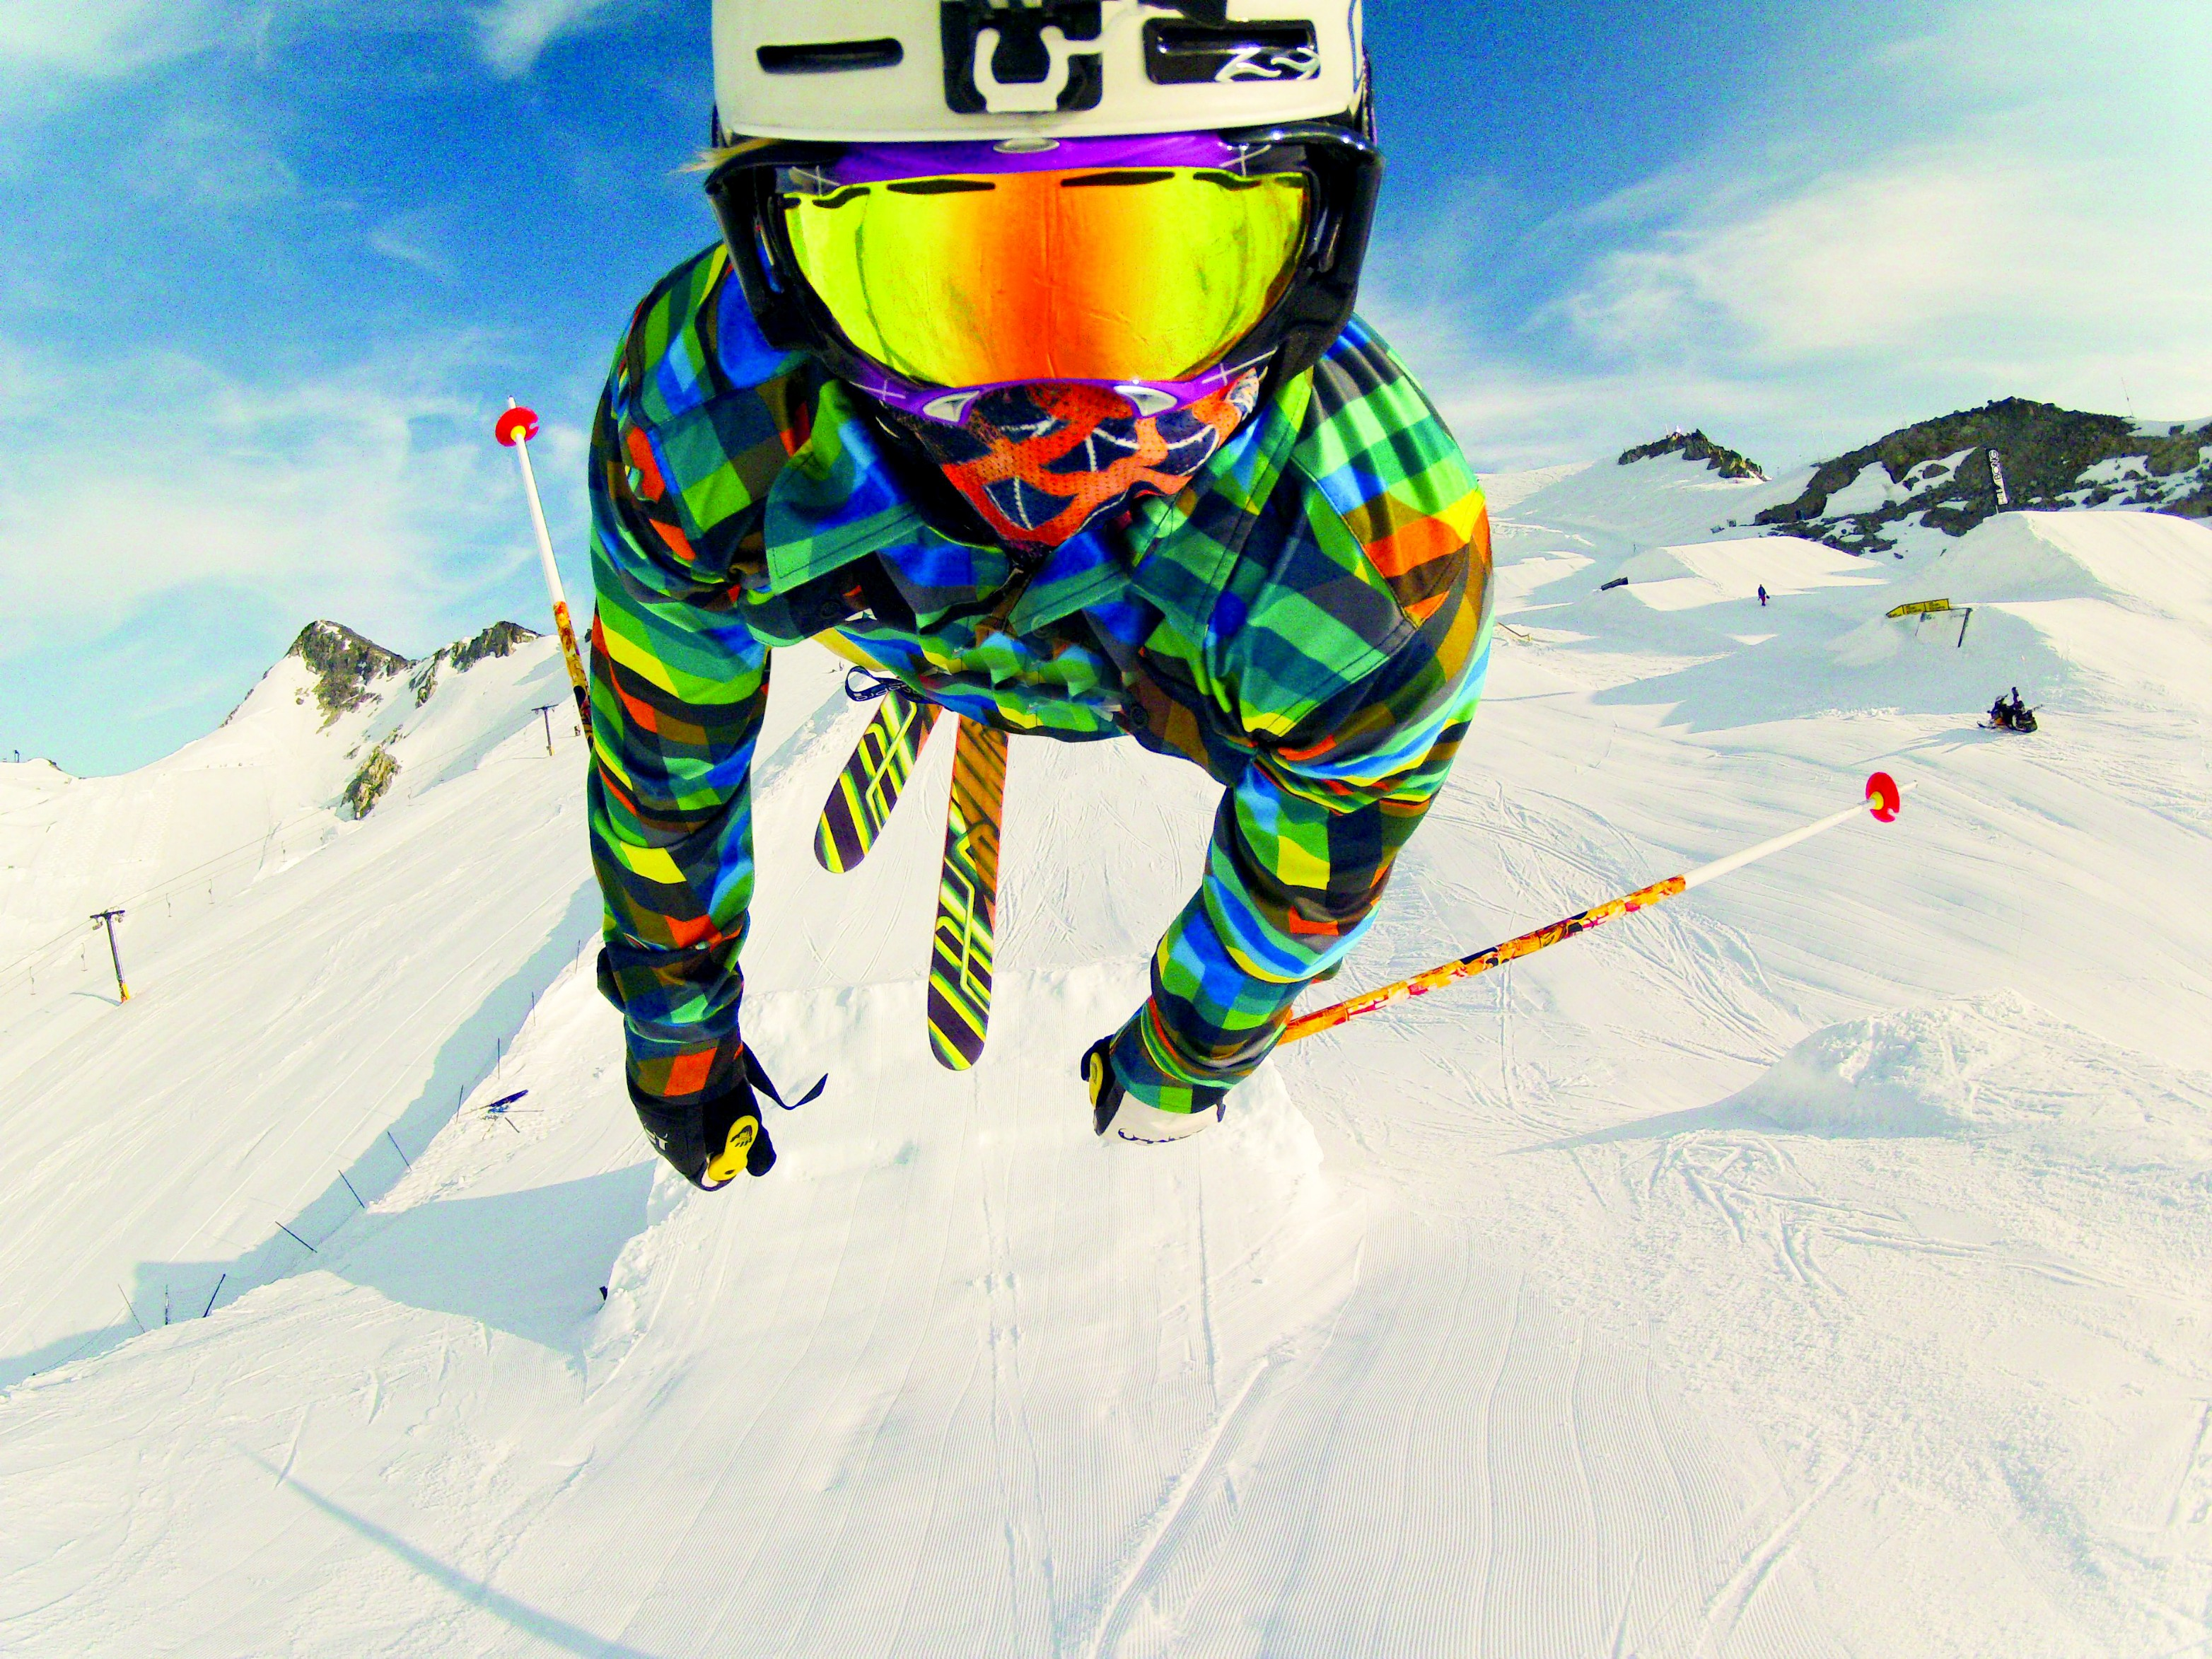 Gopro Snowboarding Wallpaper So you just got your new gopro 3128x2346